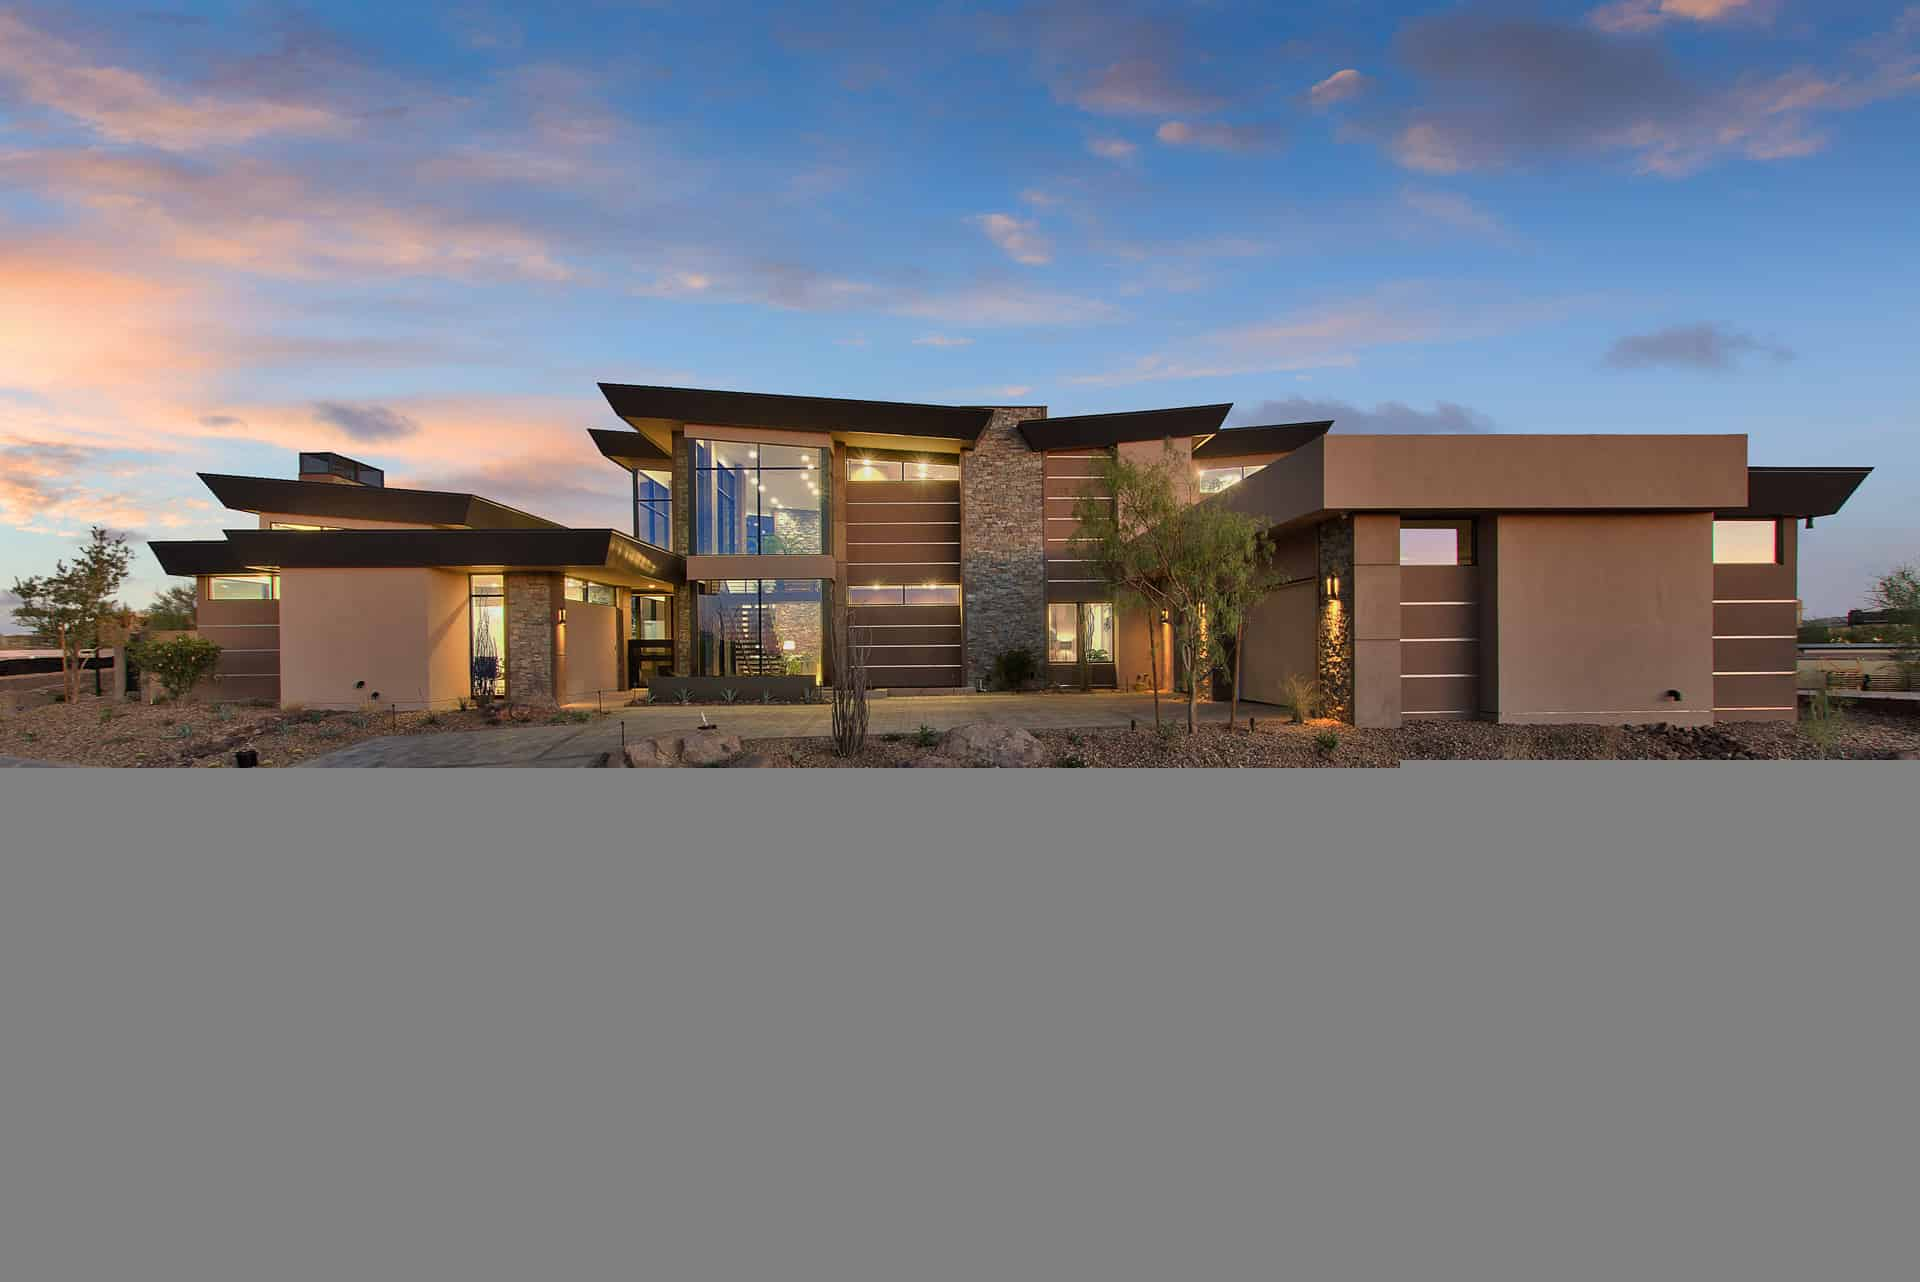 cullum-homes-in-scottsdale-podcast-interview-image-3